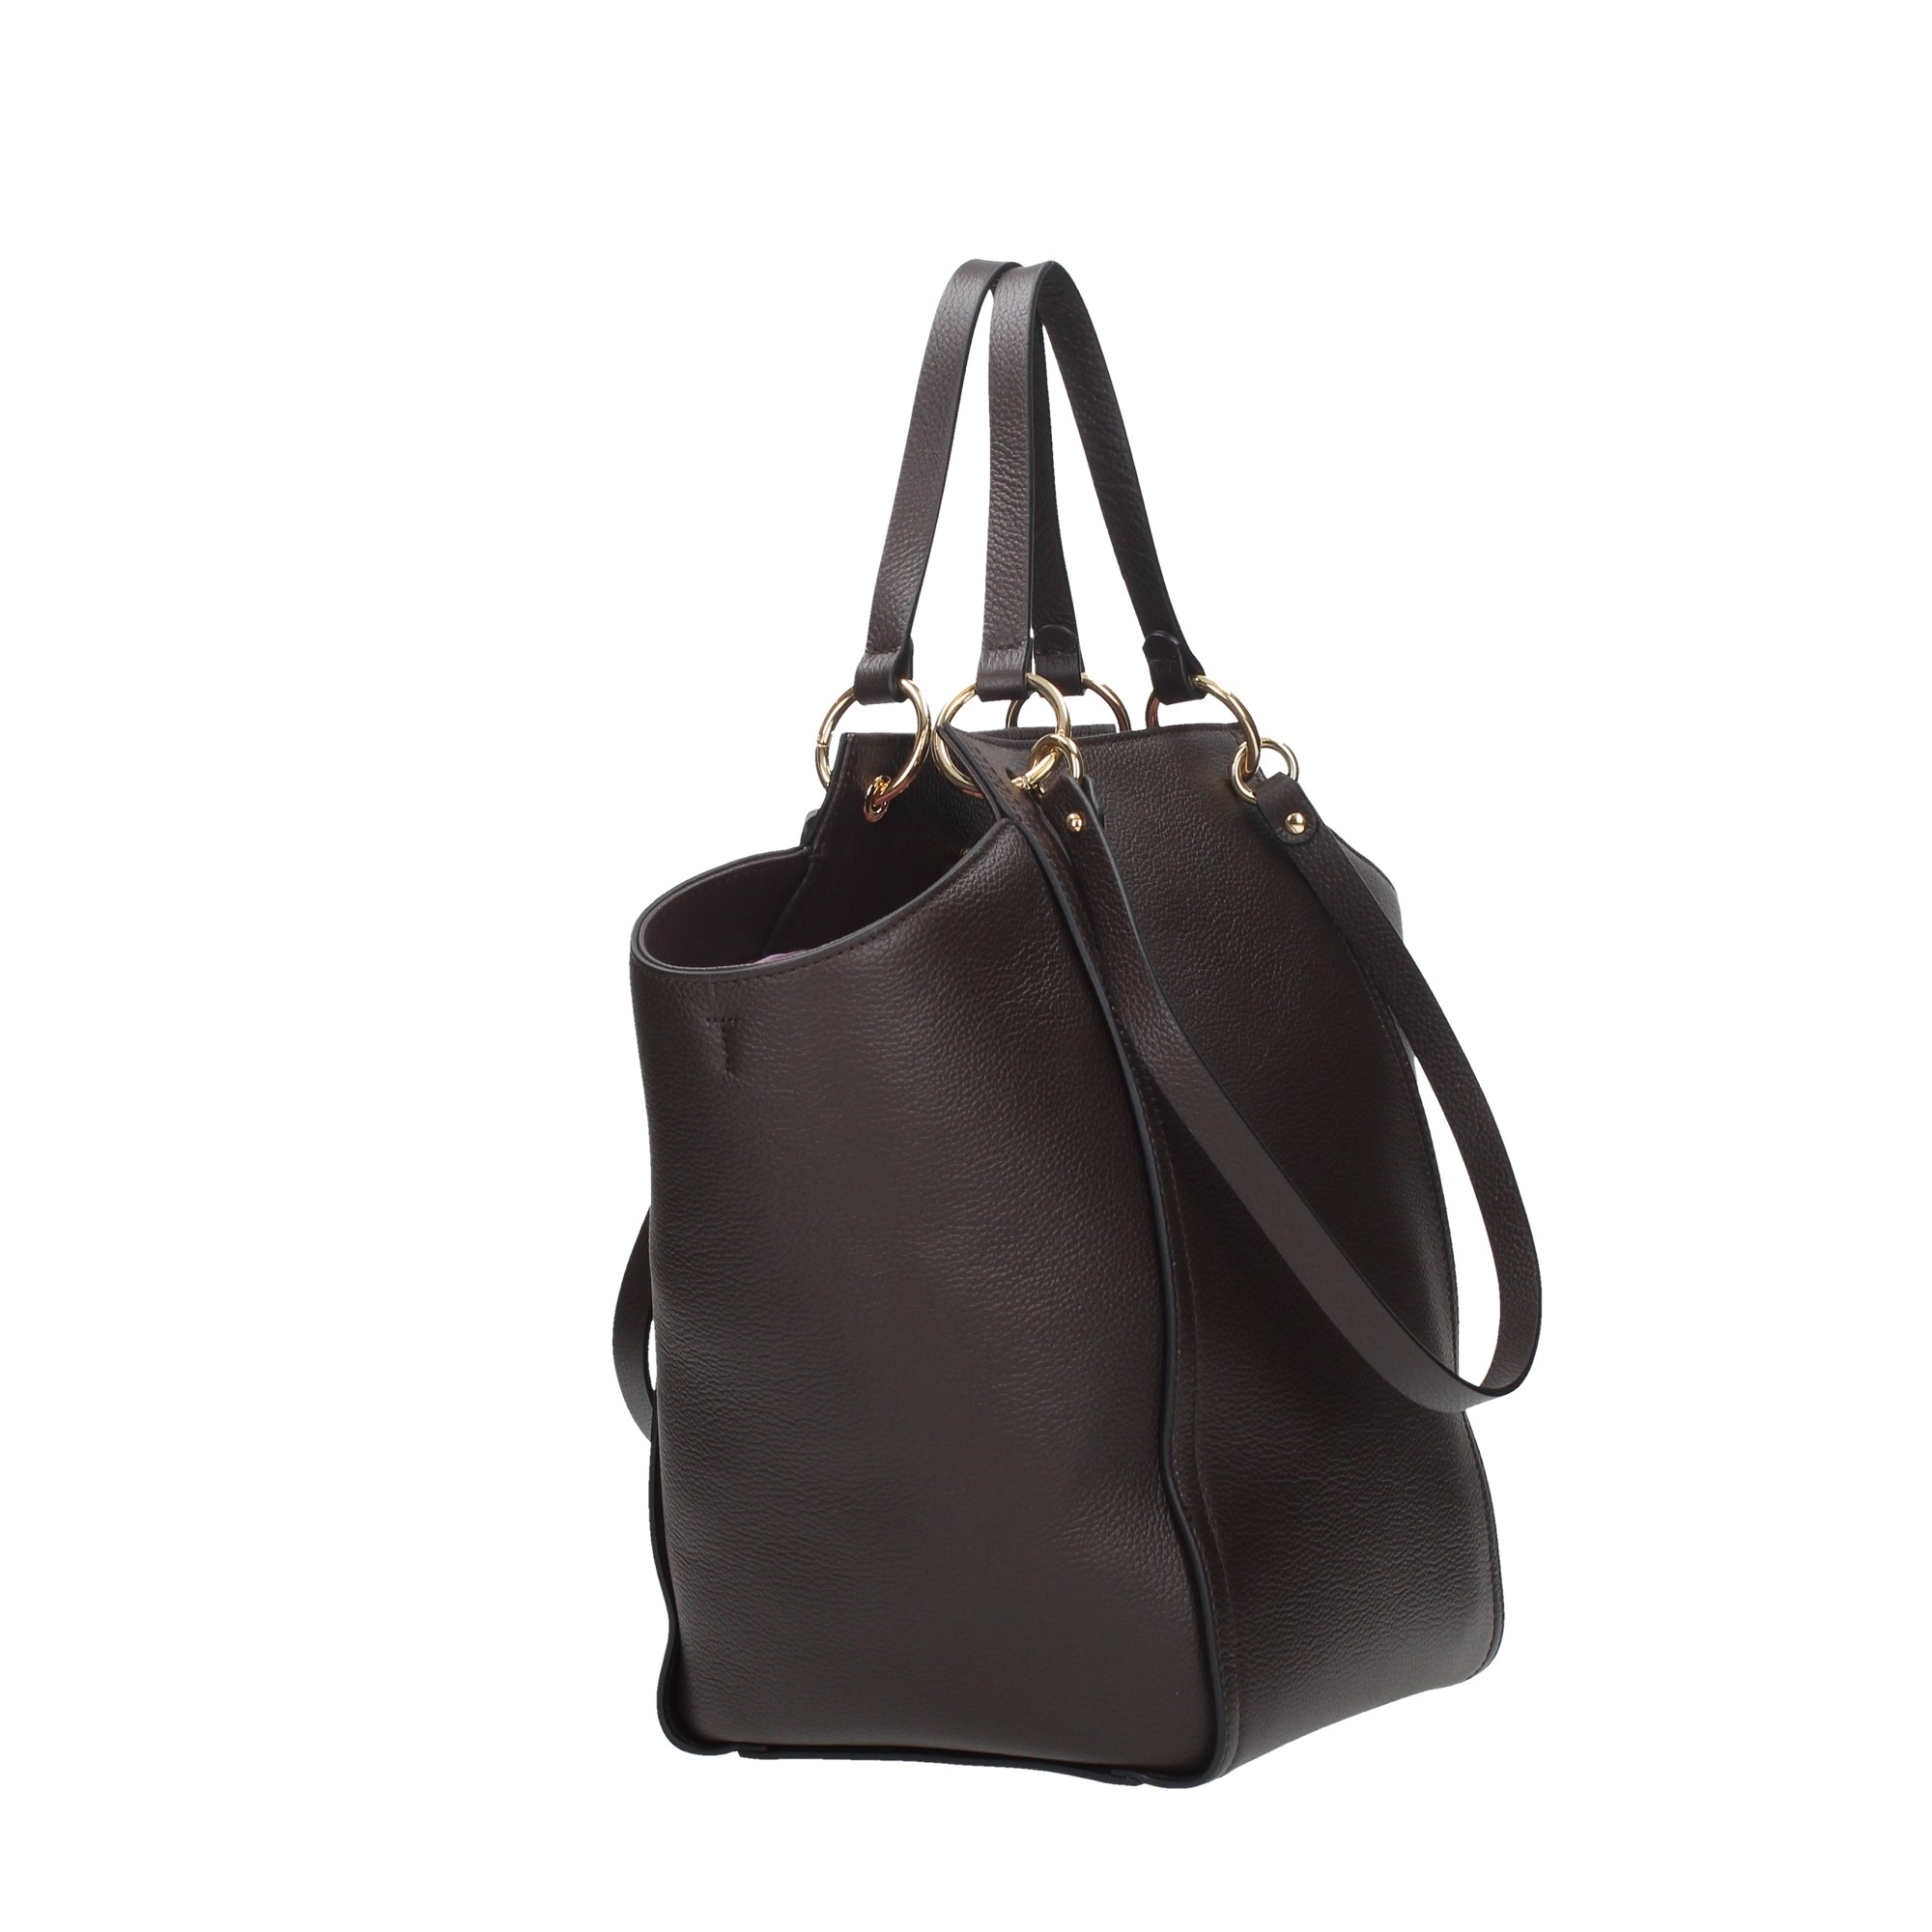 Coccinelle Accessories Women Shoulder Bags Moro head EKA 180101